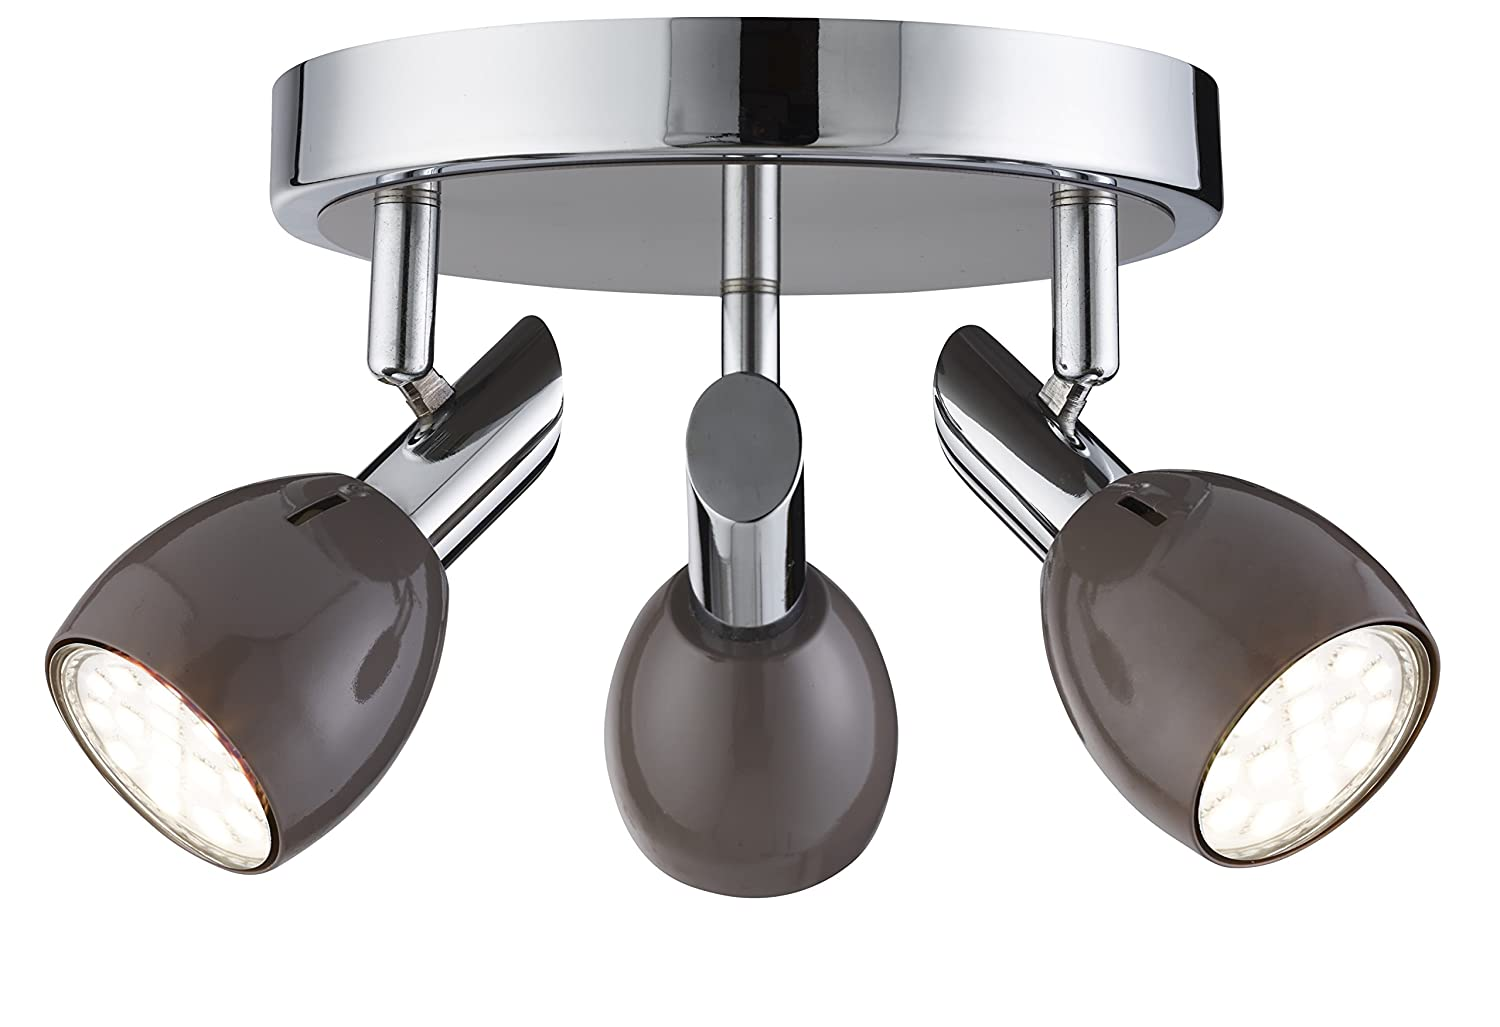 Lighting Collection 700190 GU10 35 W Spot Light wih 3 Lights and without Bulb, Chrome